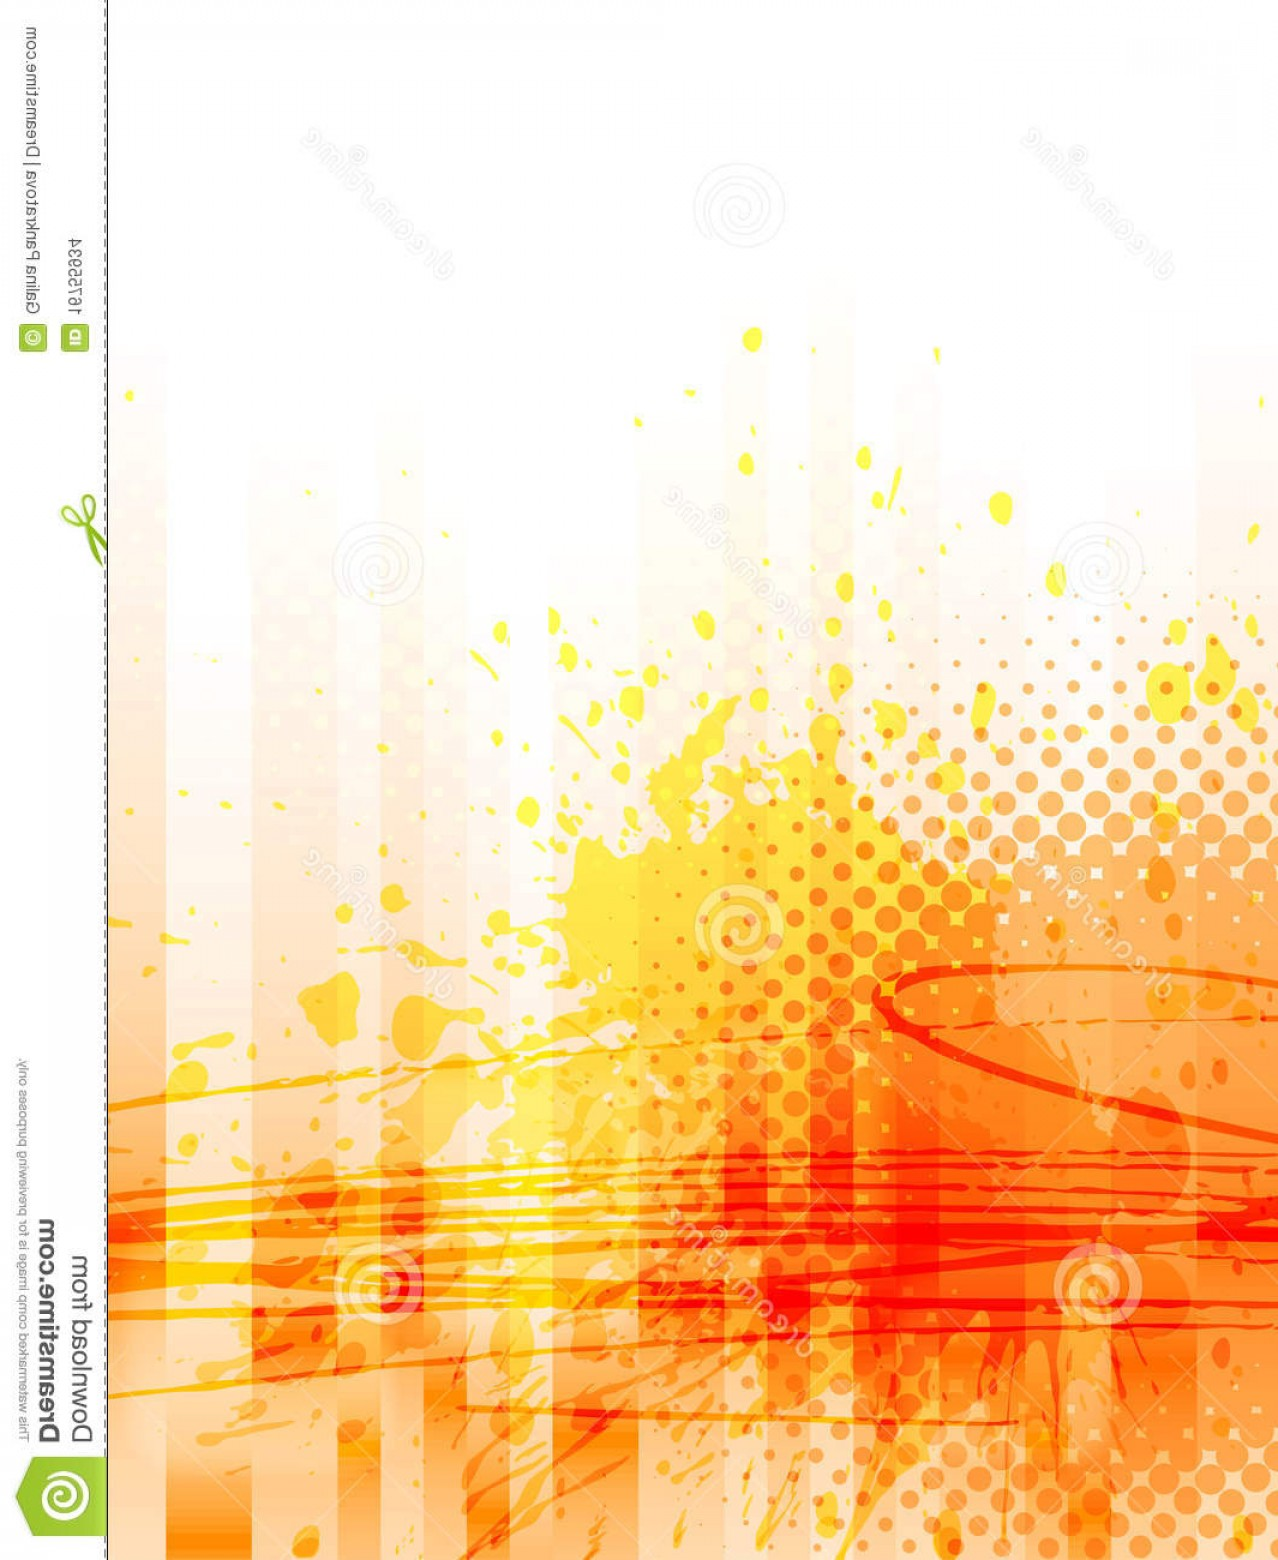 Grunge Background Vector Graphic: Stock Images Abstract Grunge Background Vector Image